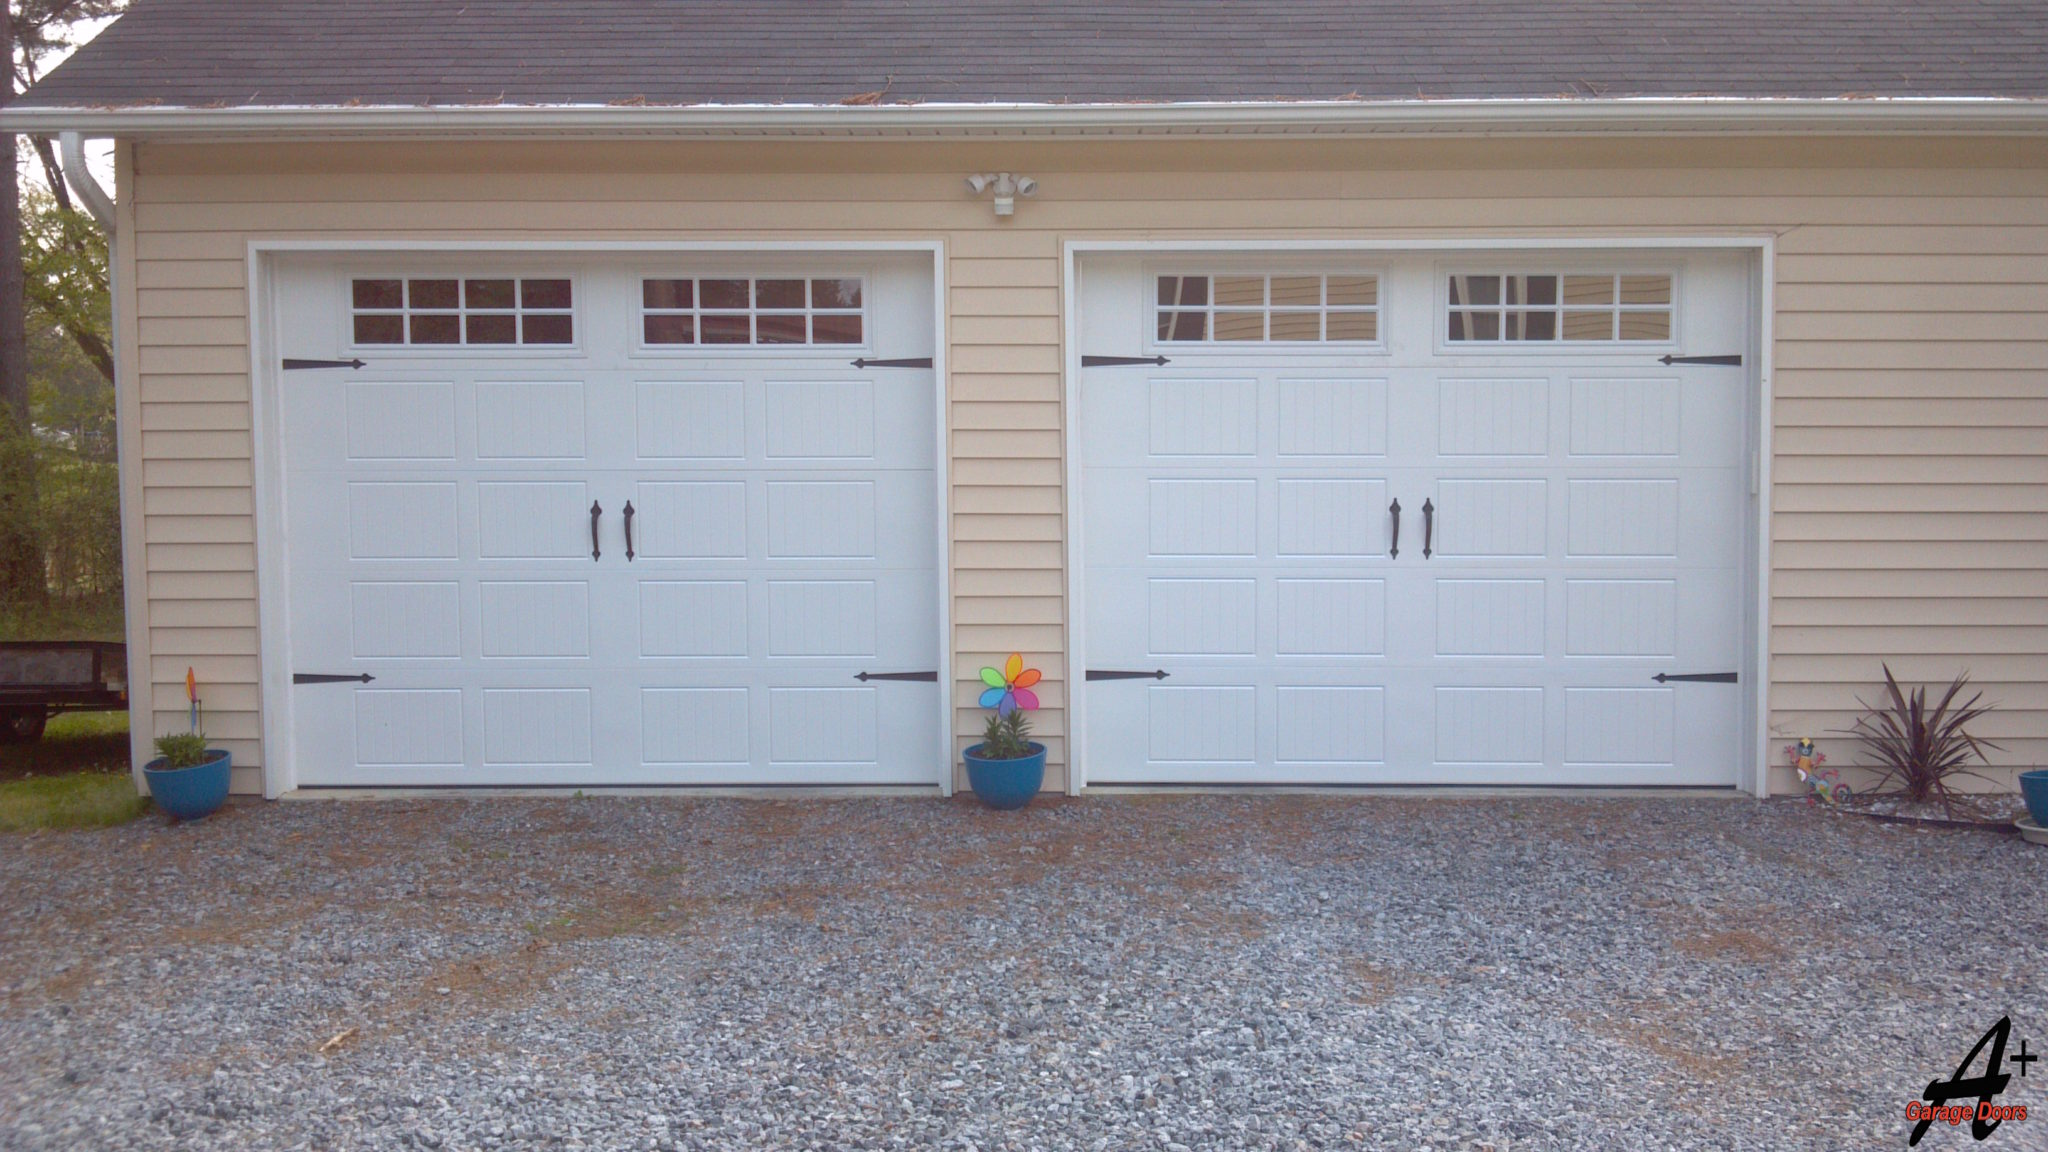 Pineville NC Single Garage Doors with Hardware